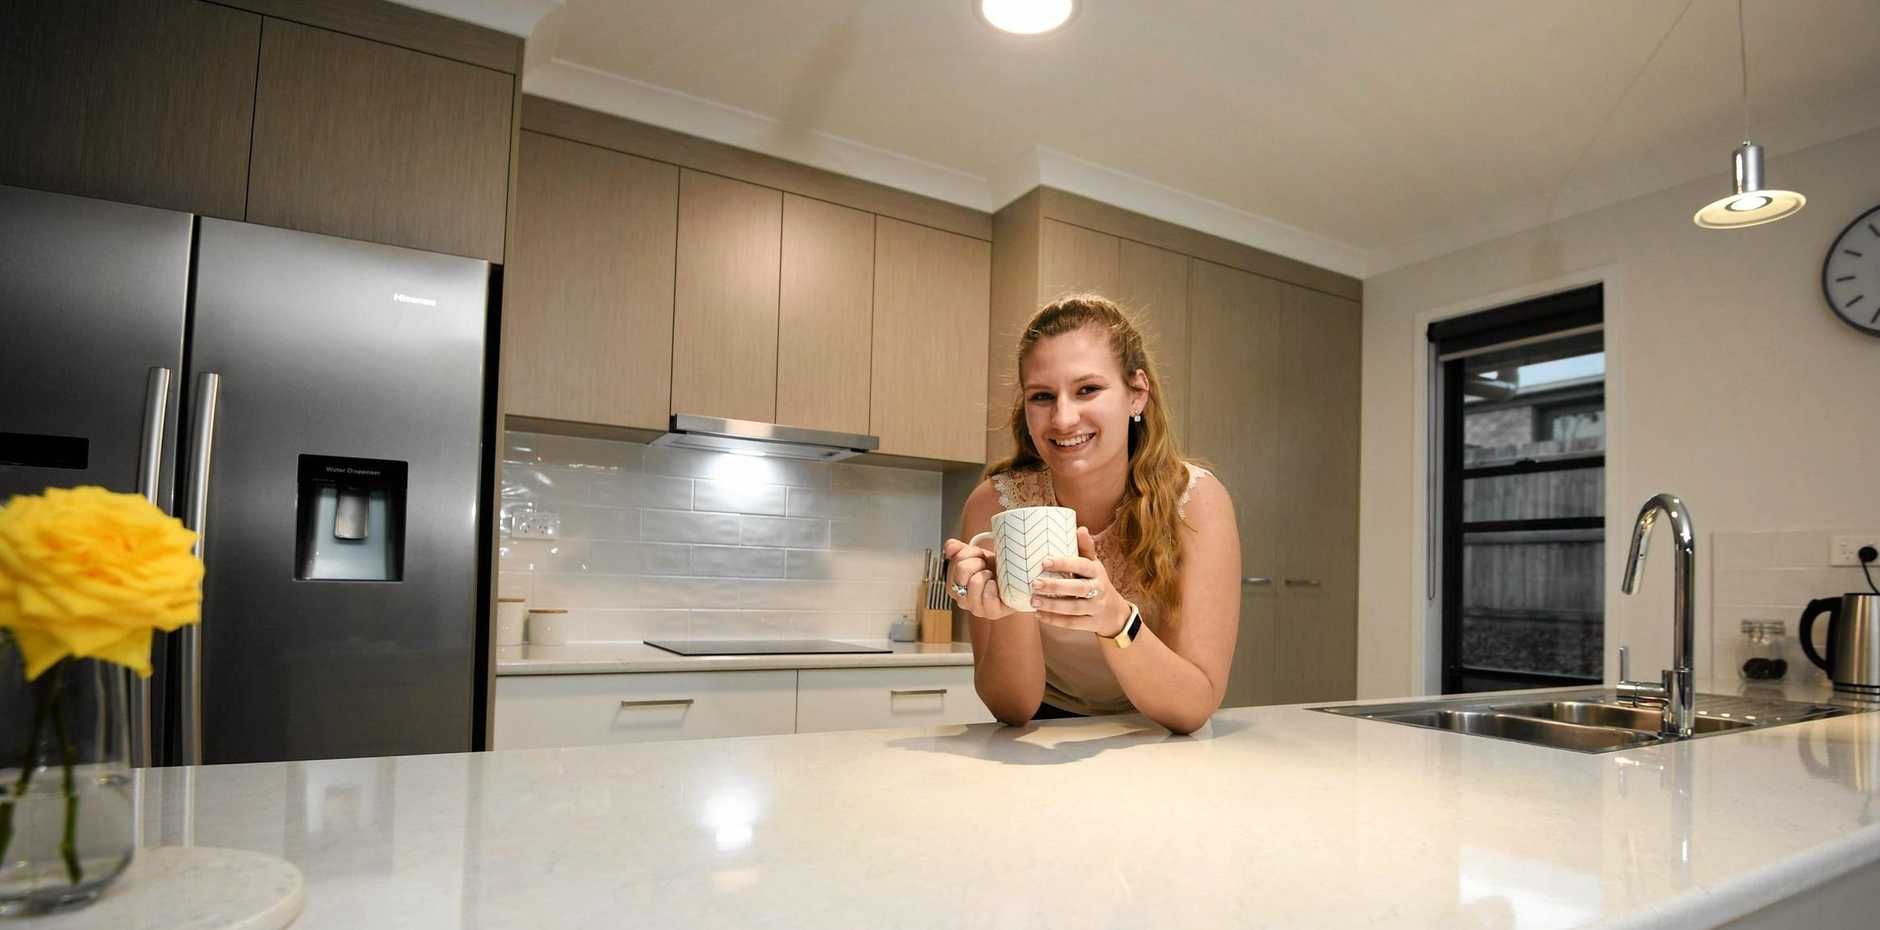 FIRST HOME BUILDER: Caitlyn Pagel built her first home on the Southside before her 21st birthday.